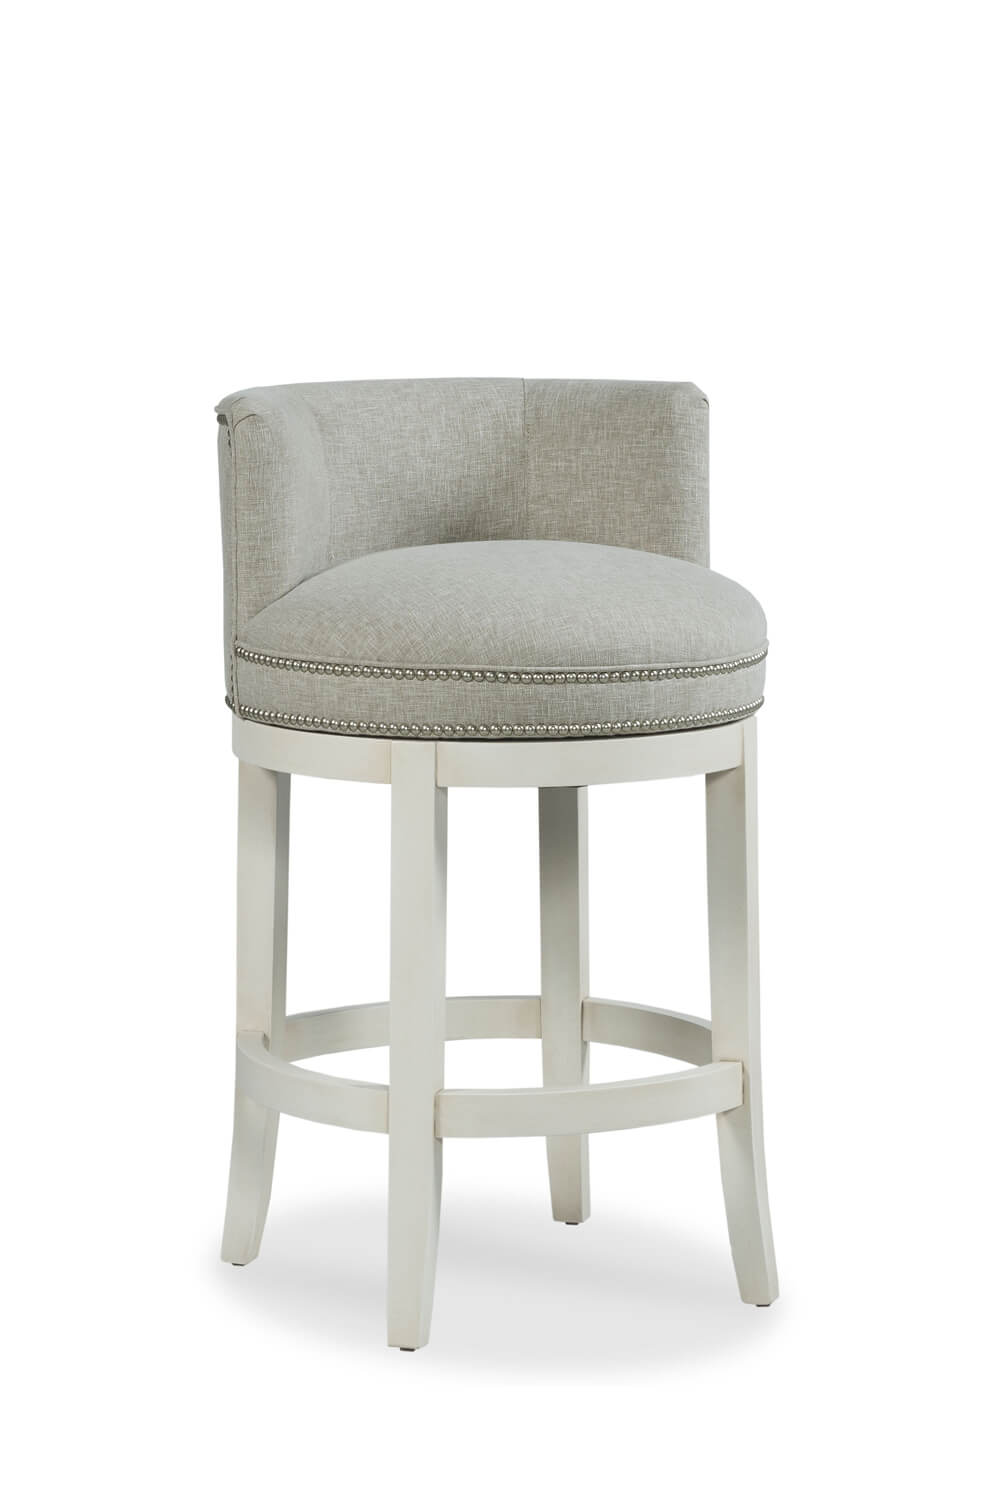 Buy Fairfield S Cosmo Upholstered Nailhead Swivel Stool